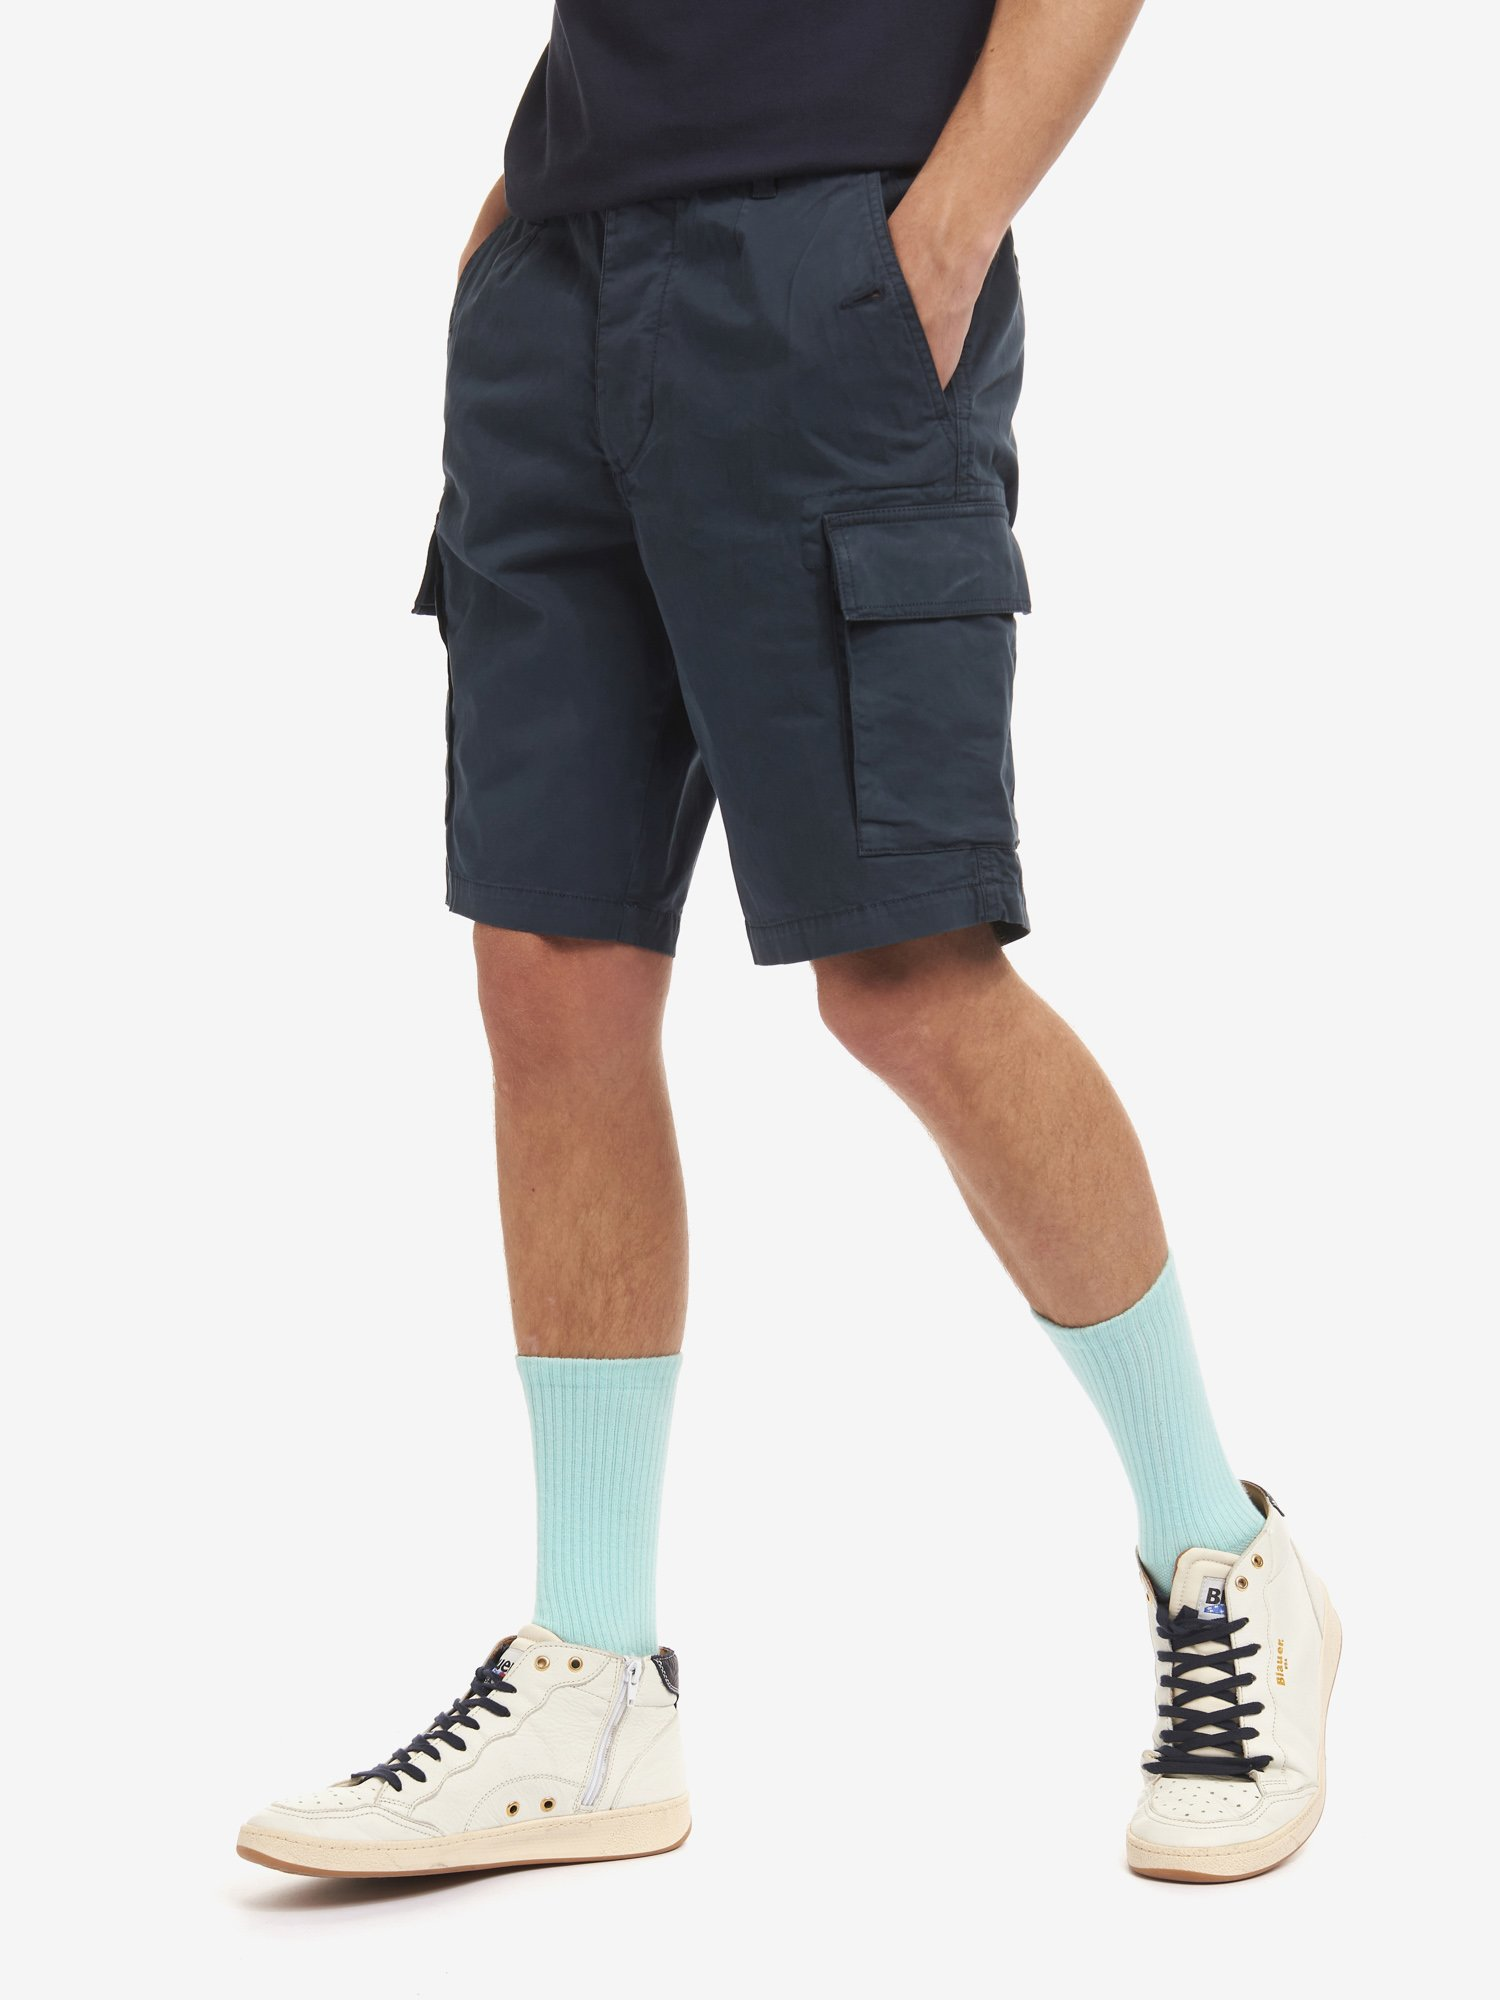 POCKET BERMUDA SHORTS - Blauer